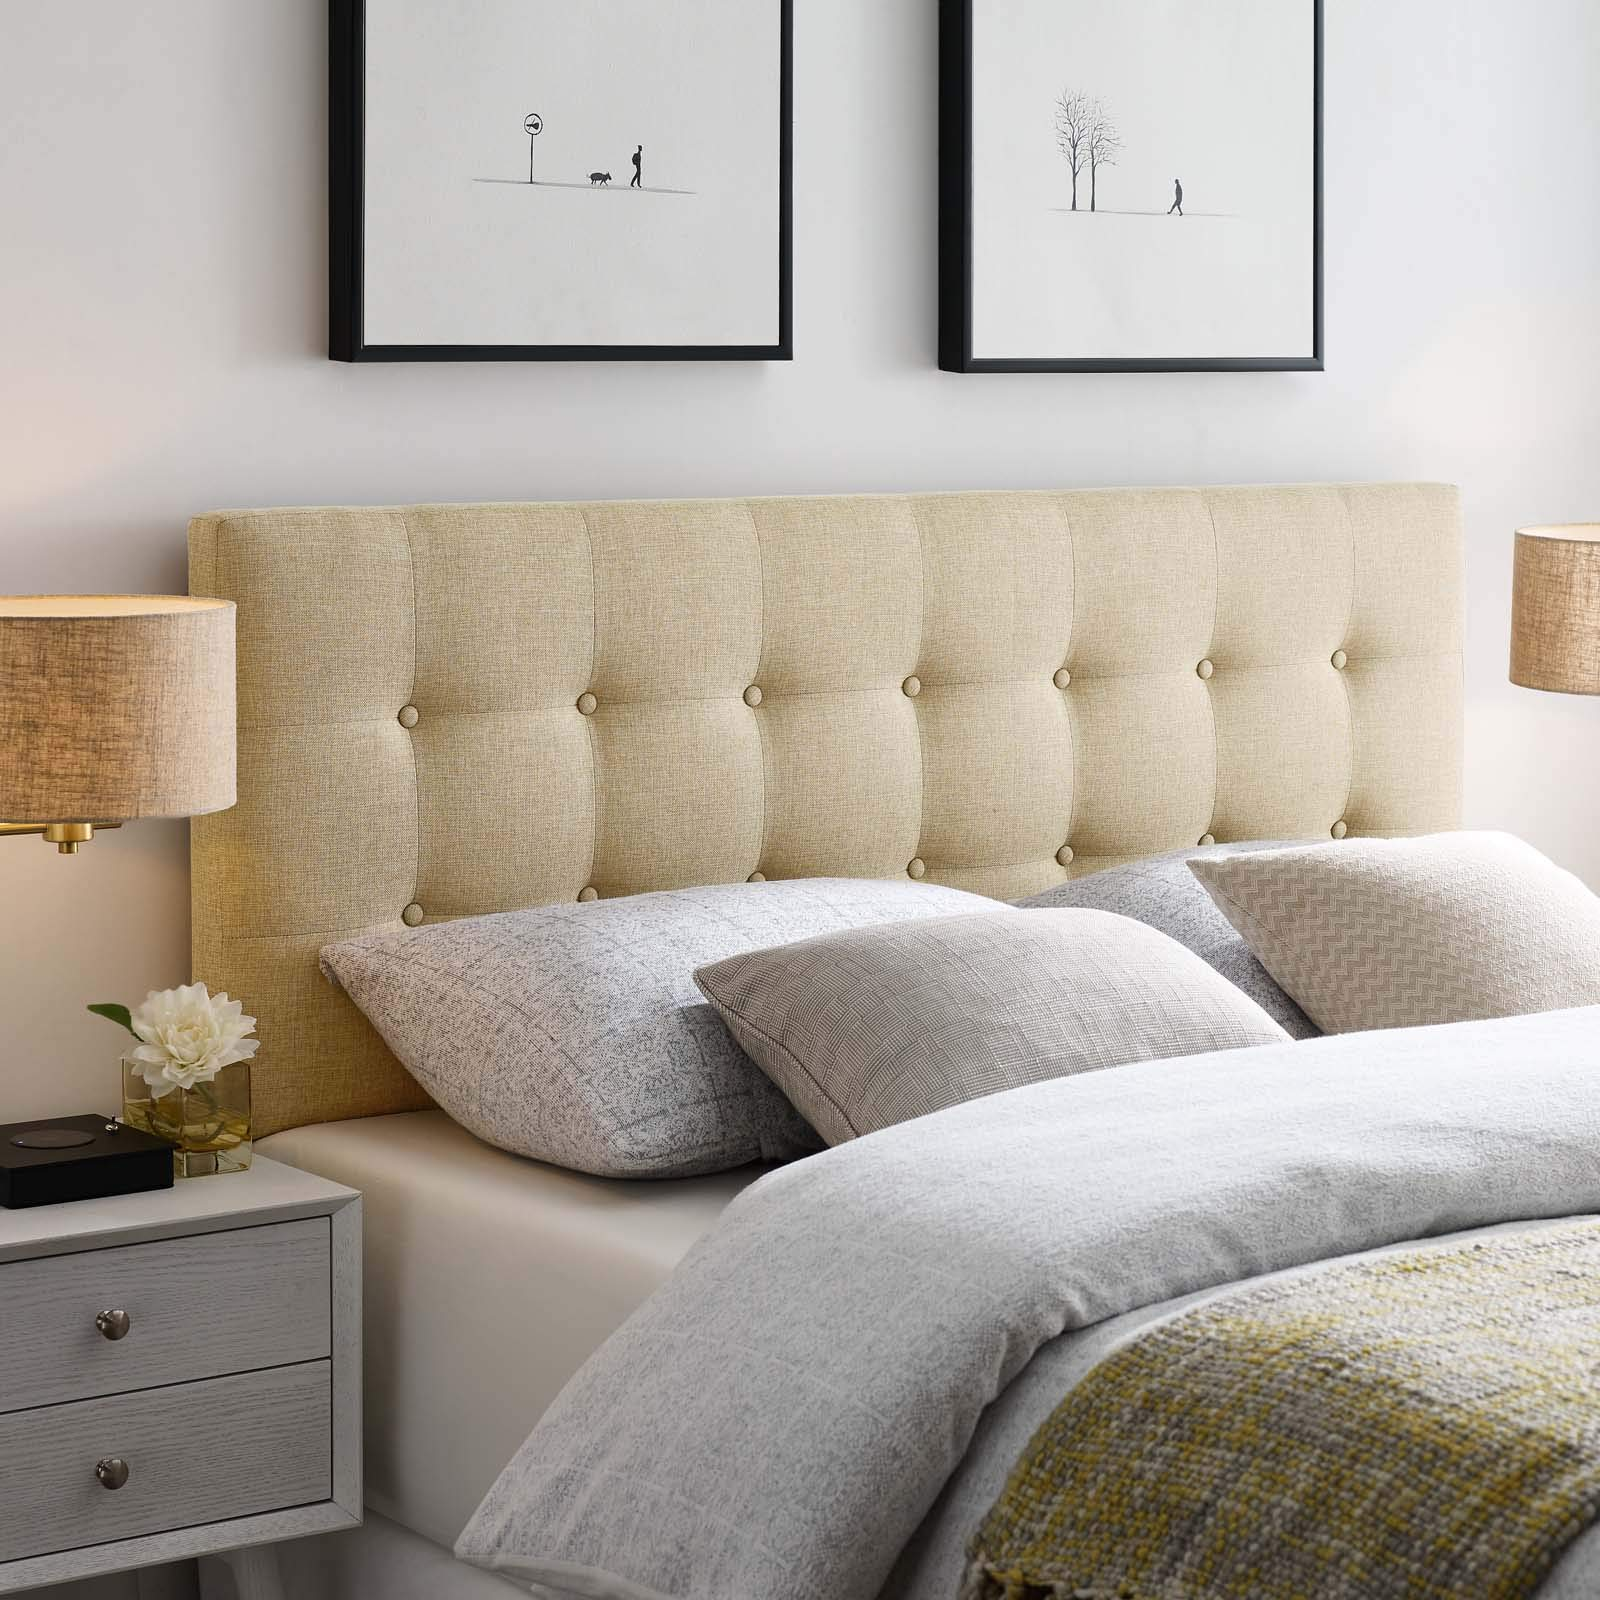 Modway Emily Tufted Button Linen Fabric Upholstered Queen Headboard in Beige by Modway